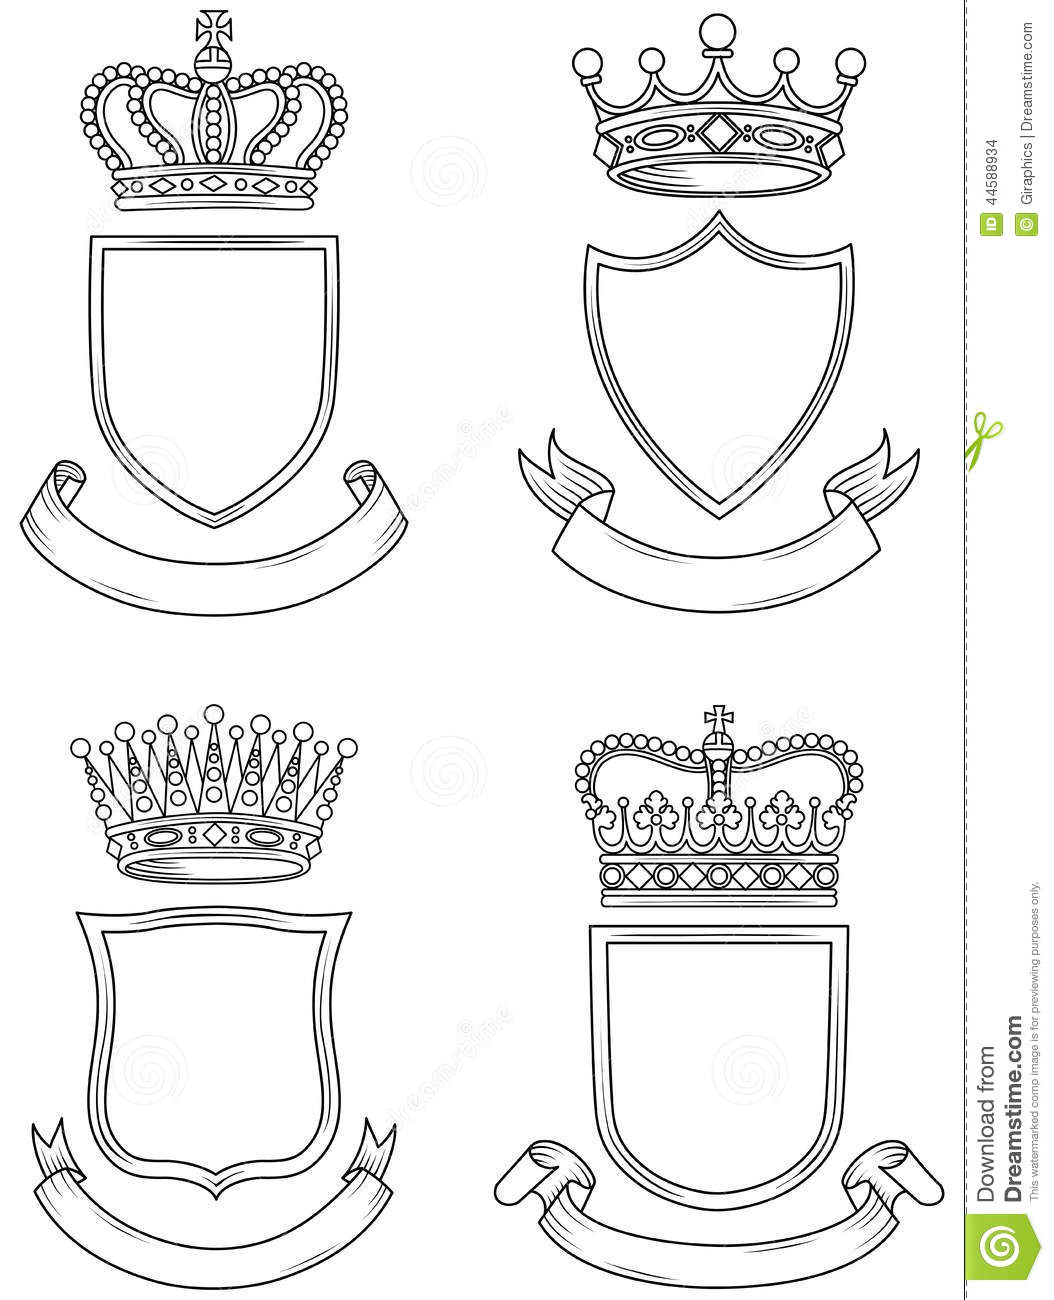 Free Coloring Pages Of Blank Coat Of Arms